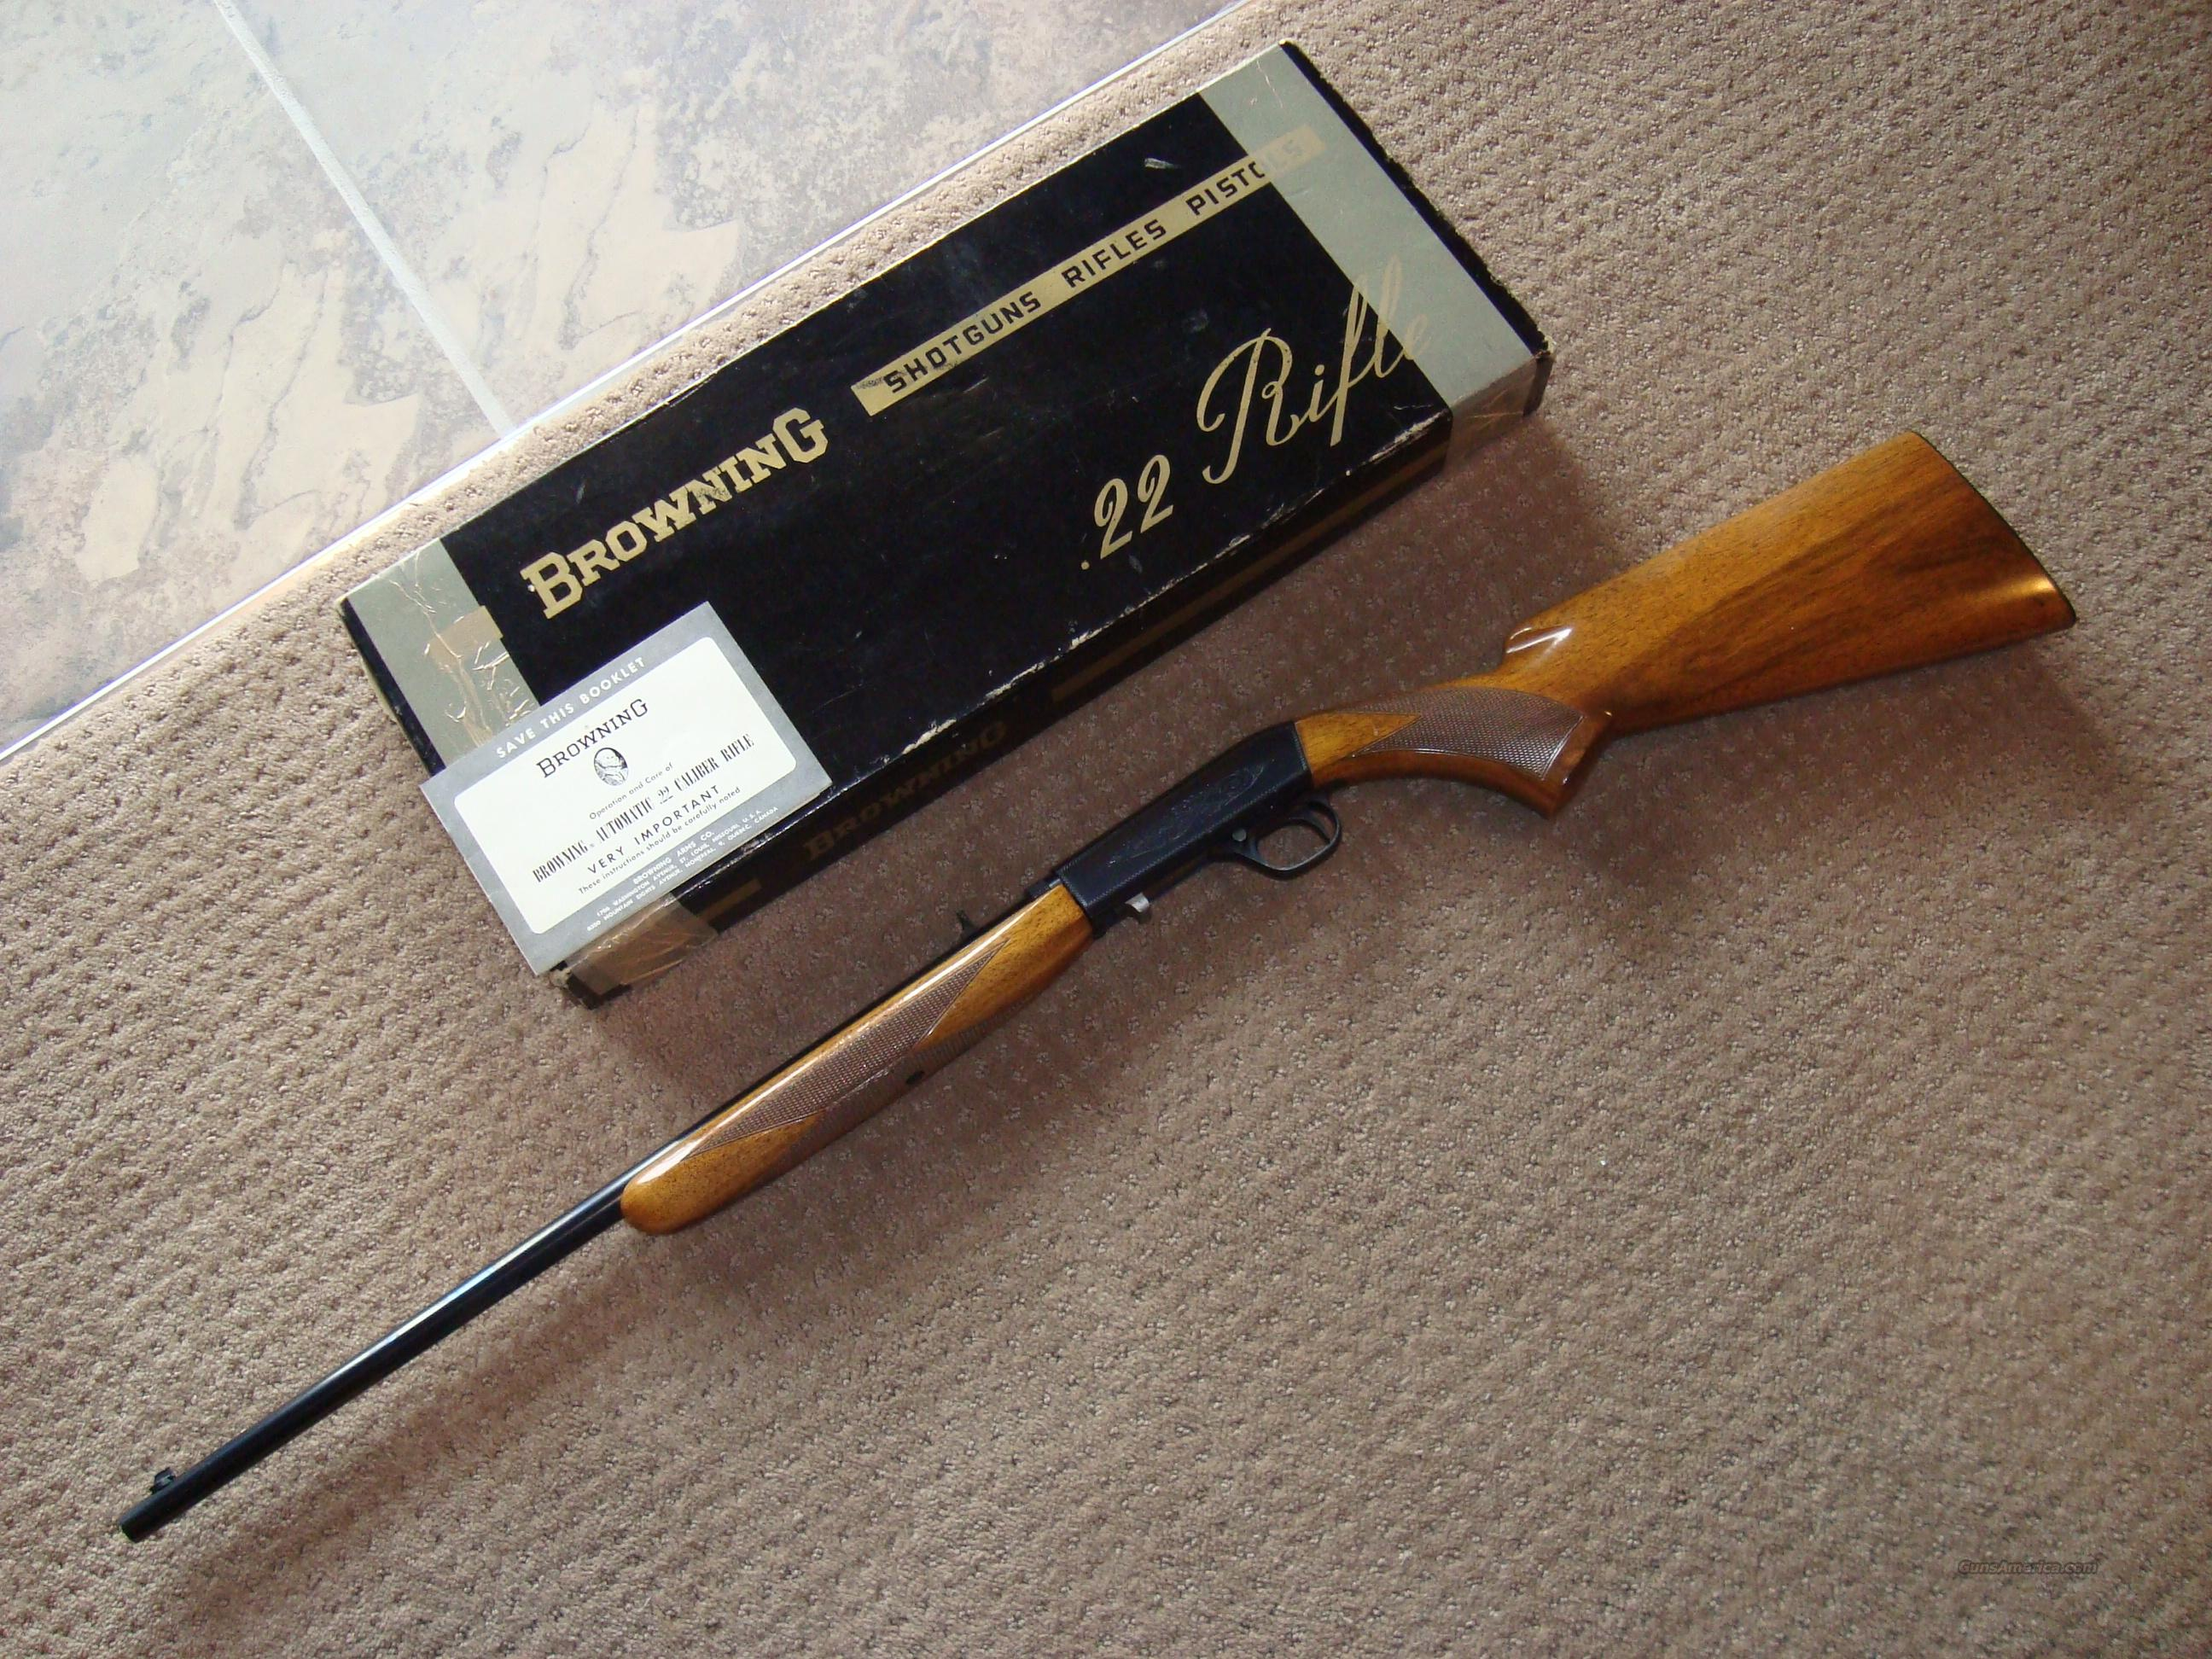 REDUCED AGAIN!!  AS NEW IN BOX - BELGIUM BROWNING SEMI AUTOMATIC 22 LR RIFLE W/MANUAL  Guns > Rifles > Browning Rifles > Semi Auto > Hunting